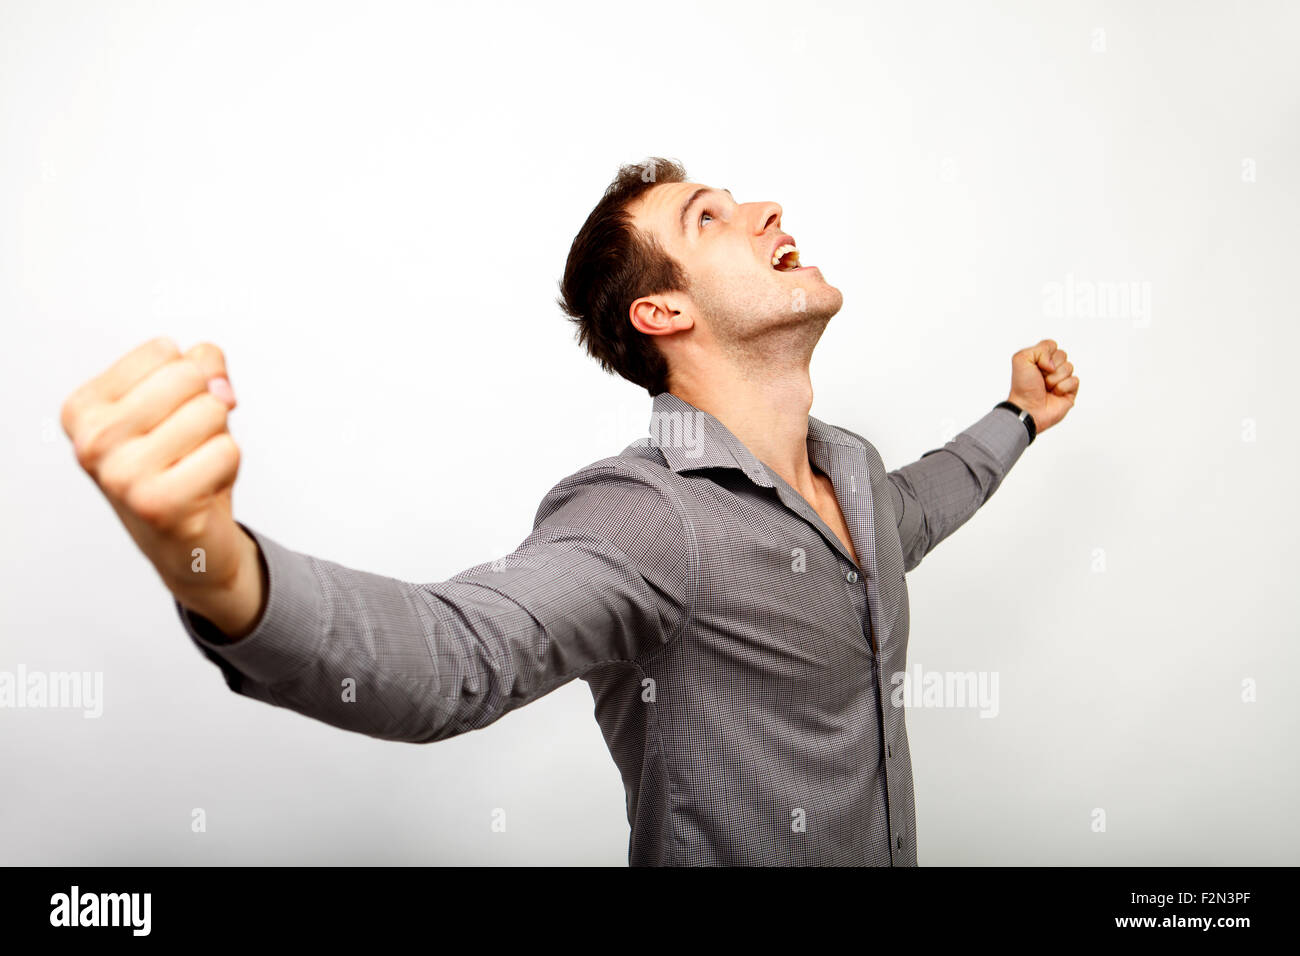 Excited man happy for his win and success - Stock Image